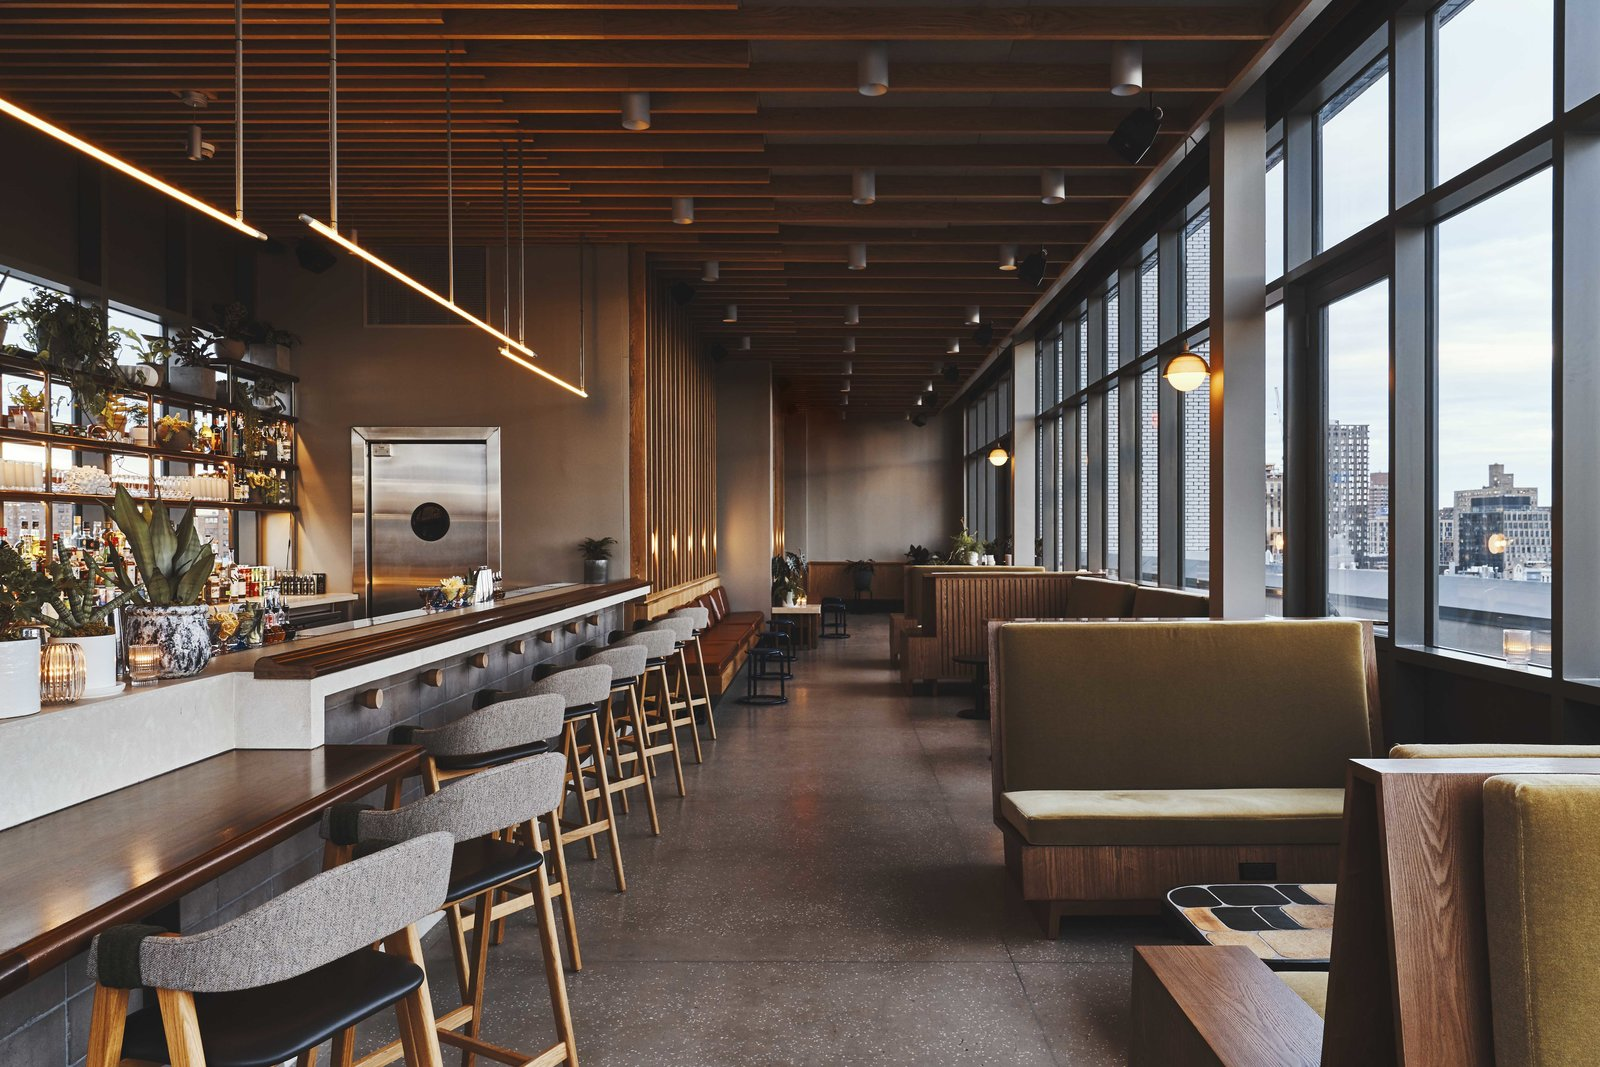 Dining, Ceiling, Chair, Bench, Concrete, Stools, Table, Bar, Wall, Track, Terrazzo, and Pendant While the design in the bar remains clean, the tones are moodier with an added touch of glam.  Best Dining Pendant Wall Photos from Ace Hotel's Sister City Opens in New York—and it's a Beaut